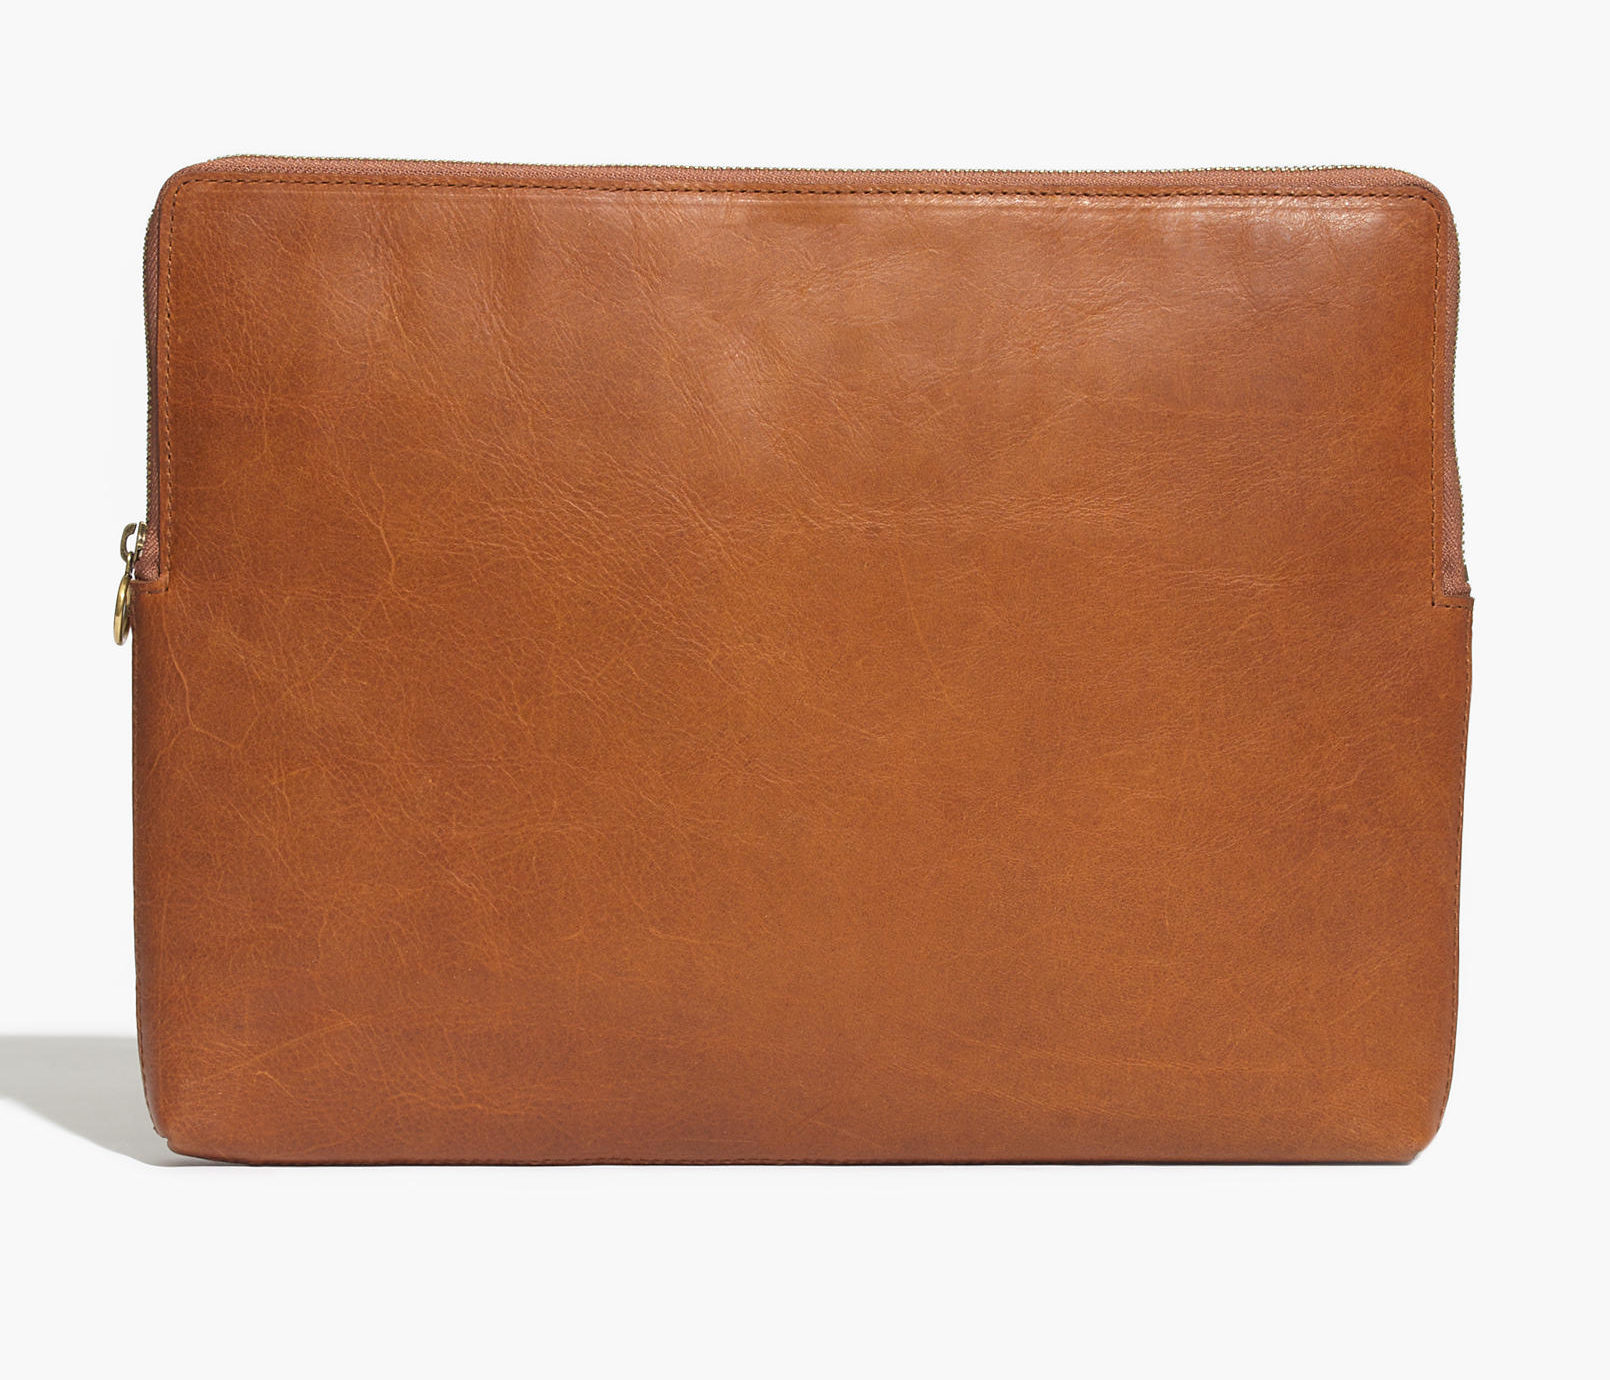 madewell case